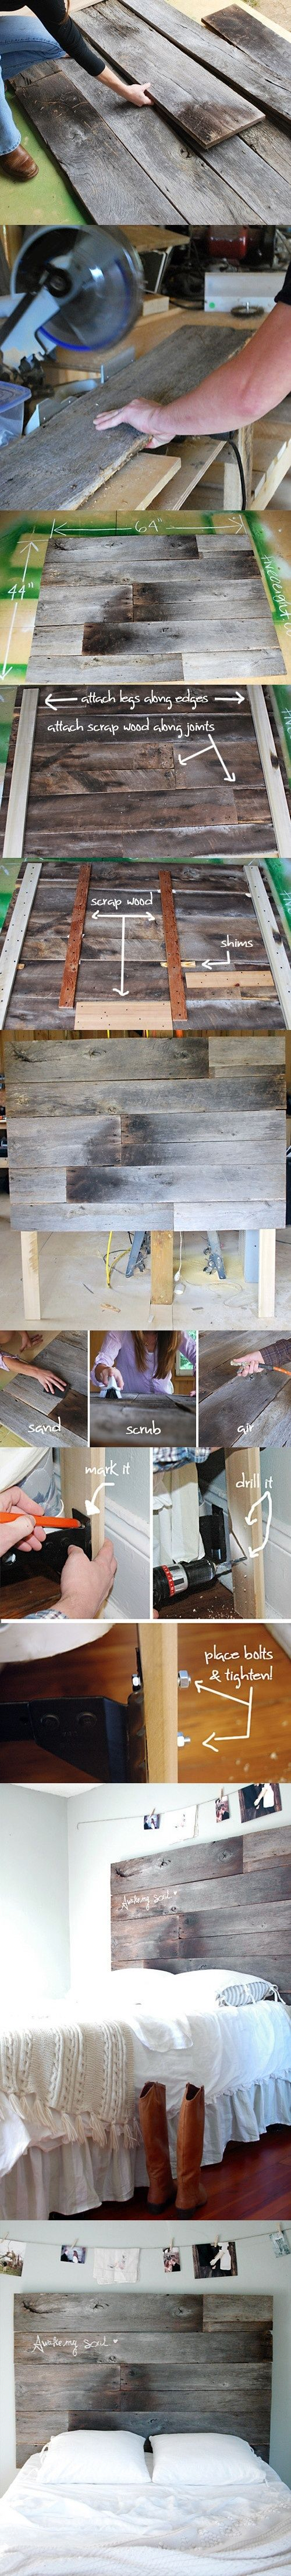 Homemade Headboard. posted a similar one but this has all the steps